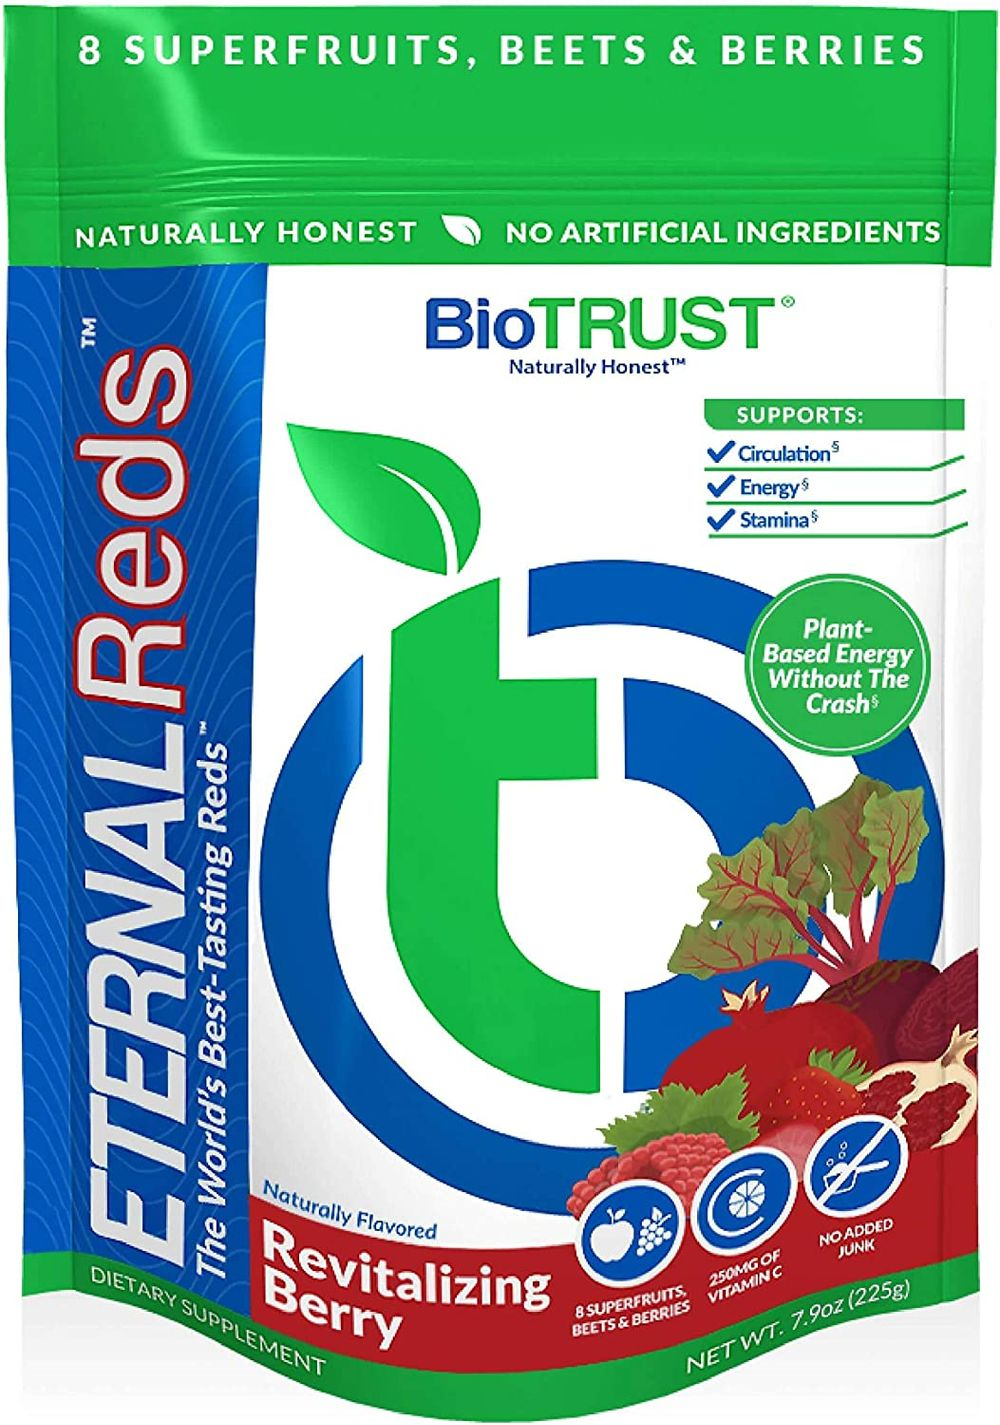 BioTrust Eternal Reds, Red Superfoods Powder, Support for Healthy Circulation, Energy, Stamina, No Added Sugar or Caffeine, Naturally Flavored and Sweetened, Berry Flavor (30 Servings)